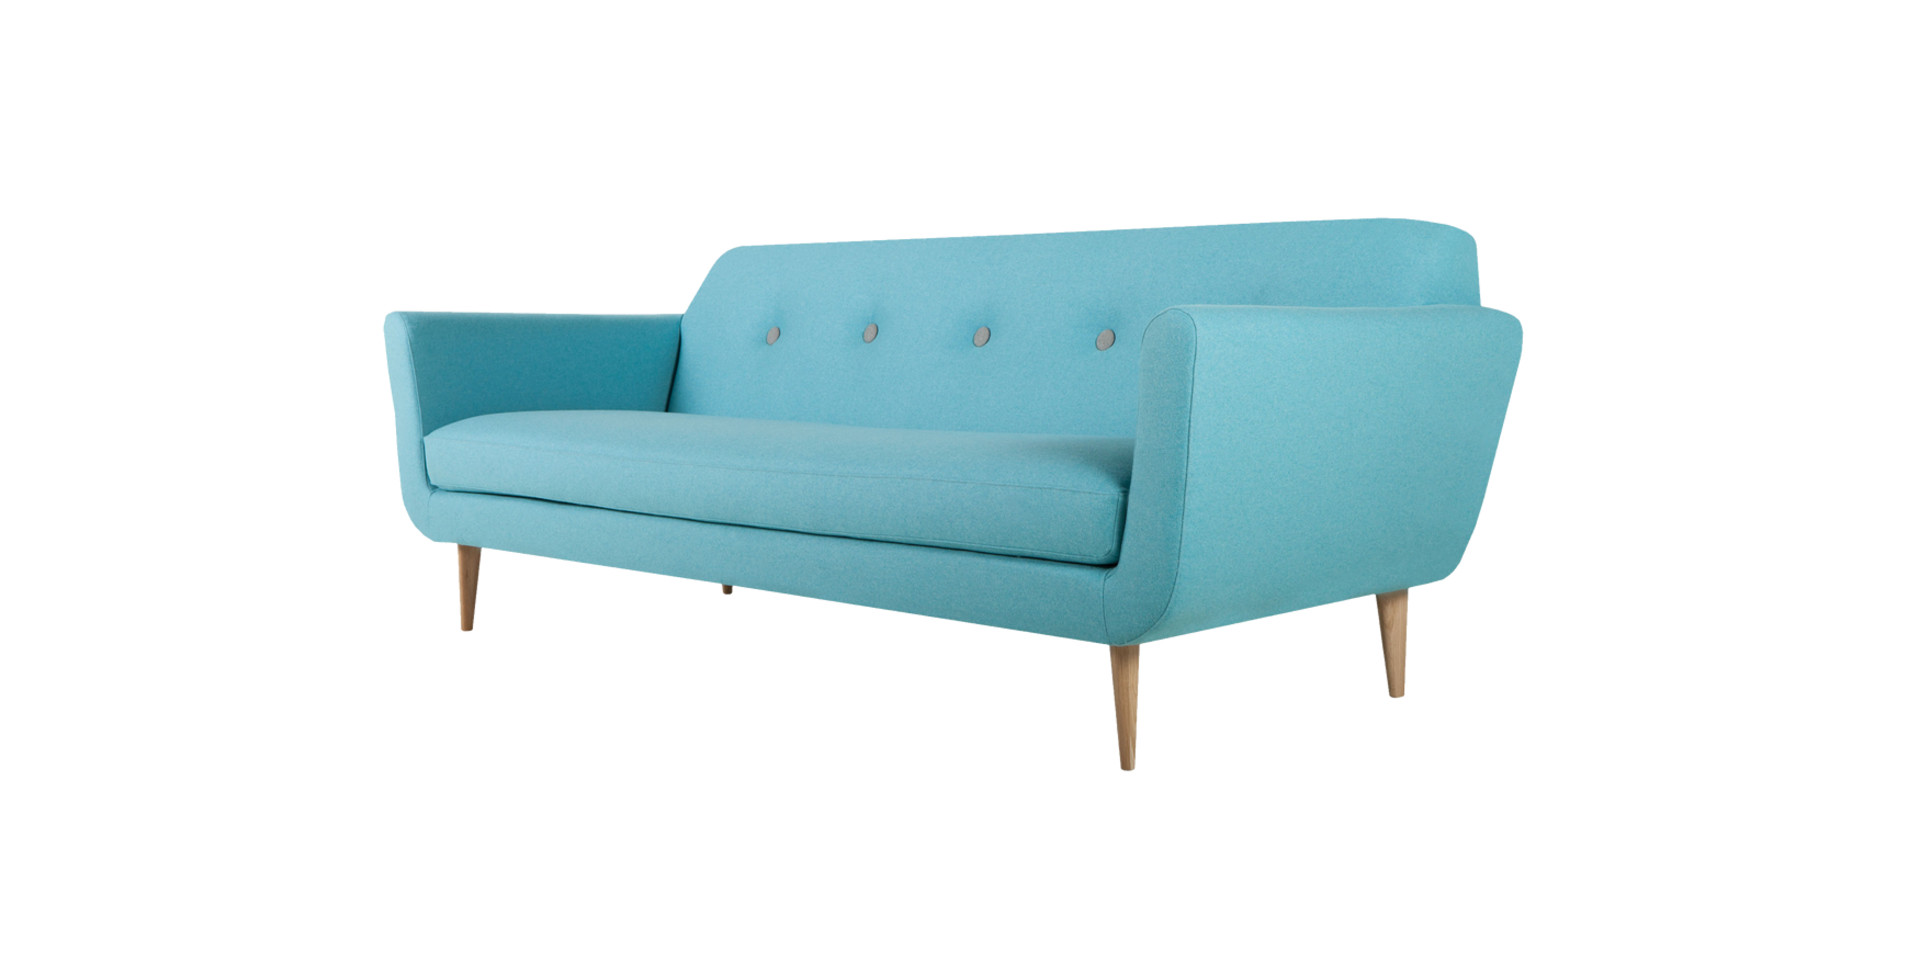 sist-otto-canape-3seater_panno2274_light_turquoise_4_0